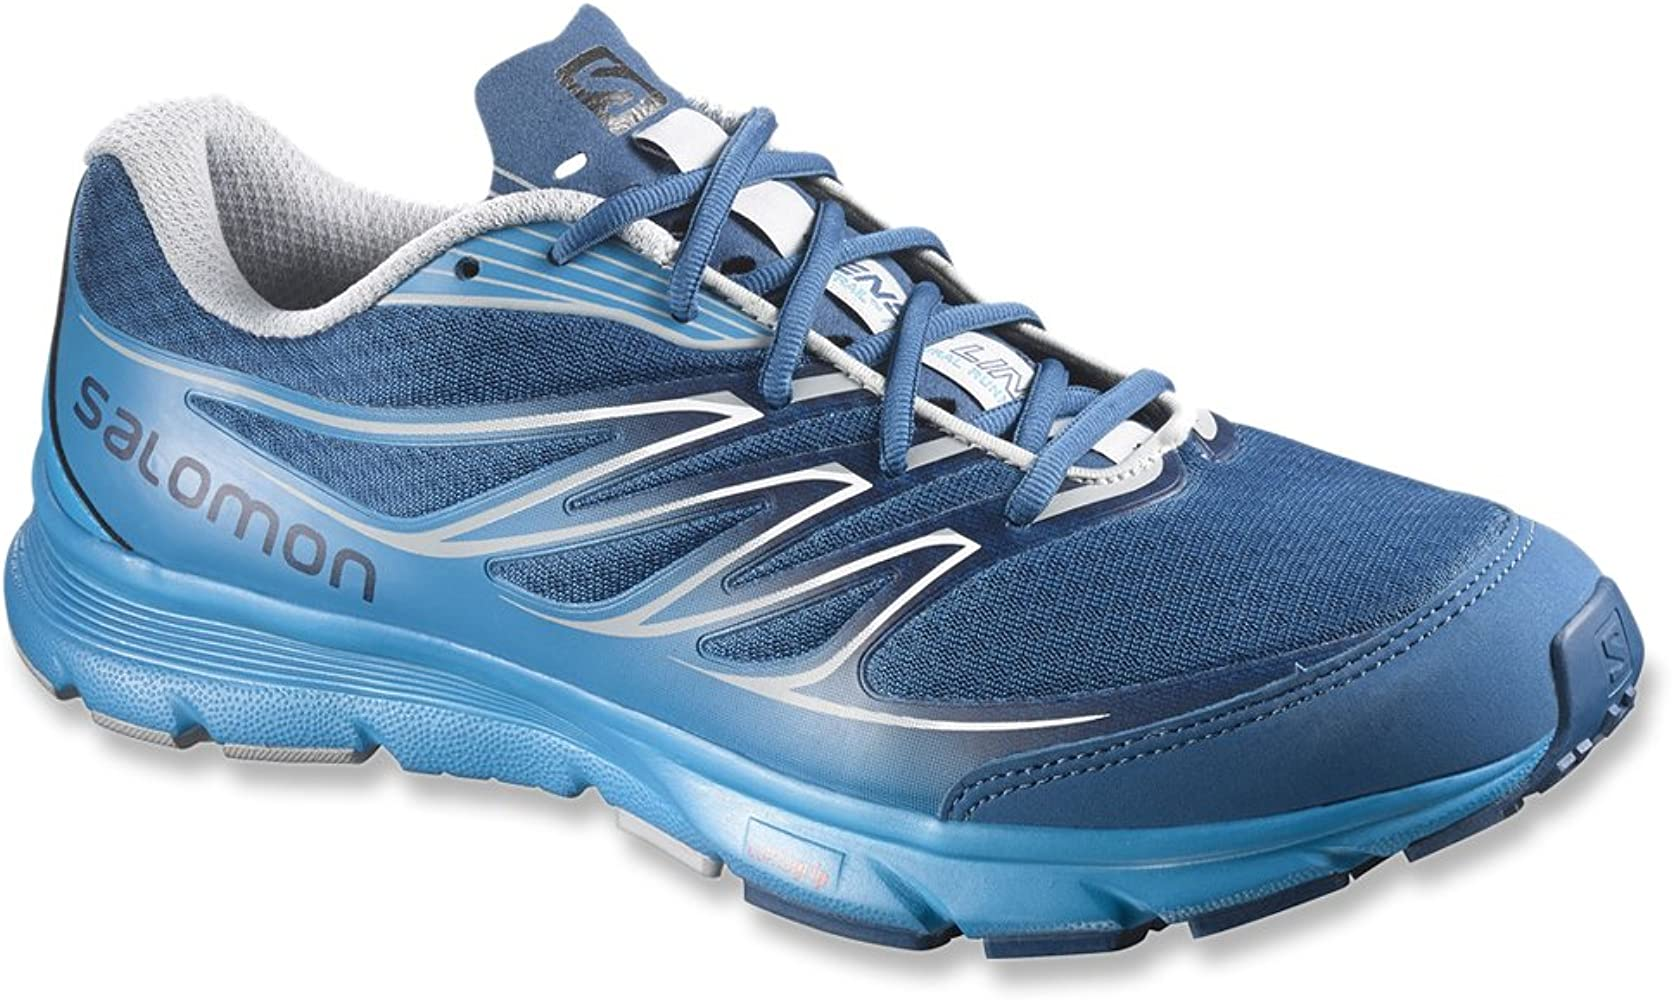 Salomon Sense Link Zapatillas de Running, Color Azul, Talla 48 EU (M): Amazon.es: Zapatos y complementos